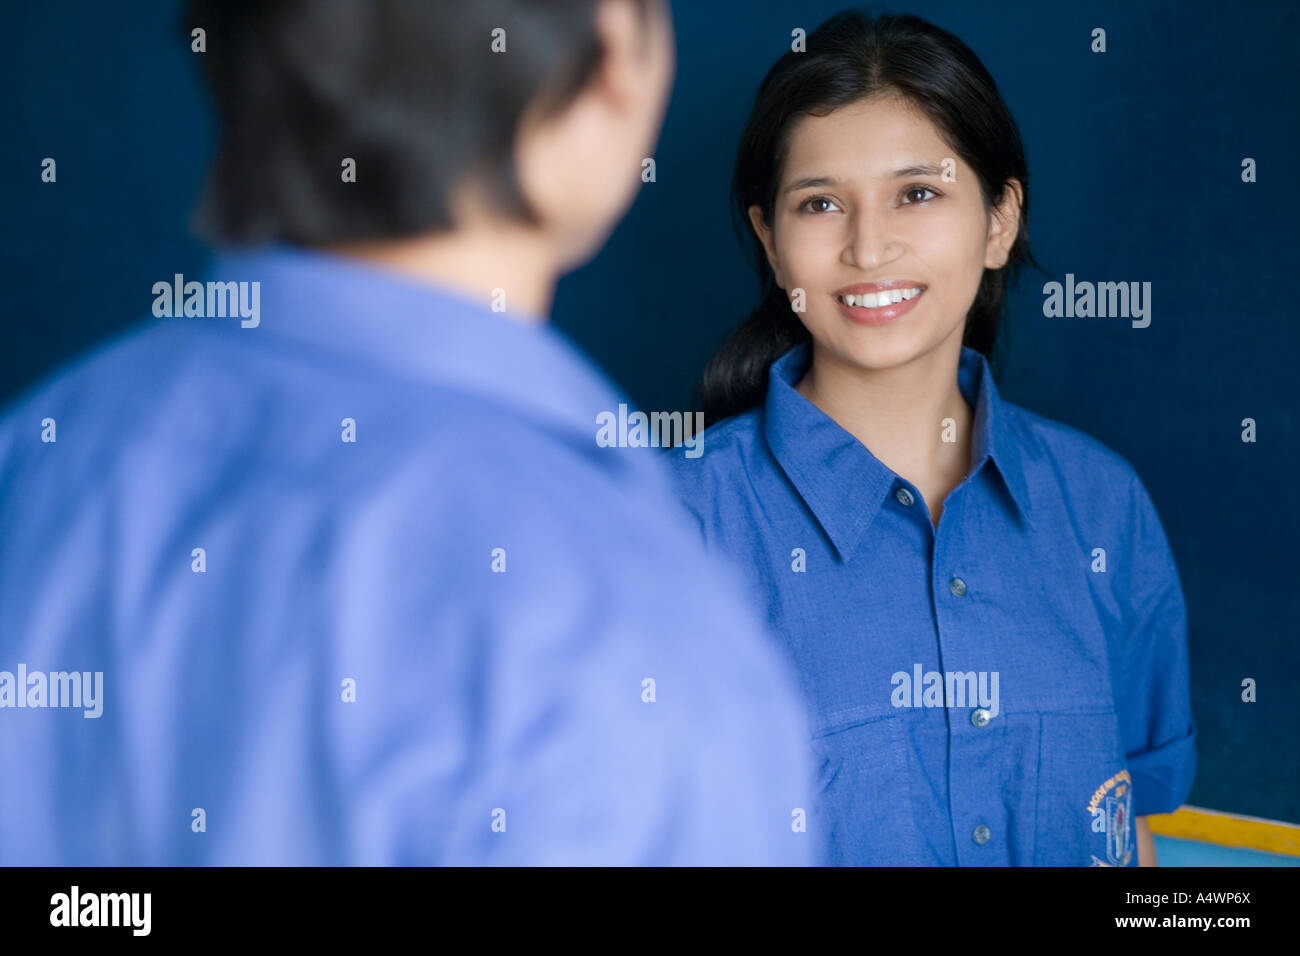 Female student talking to male classmate - Stock Image